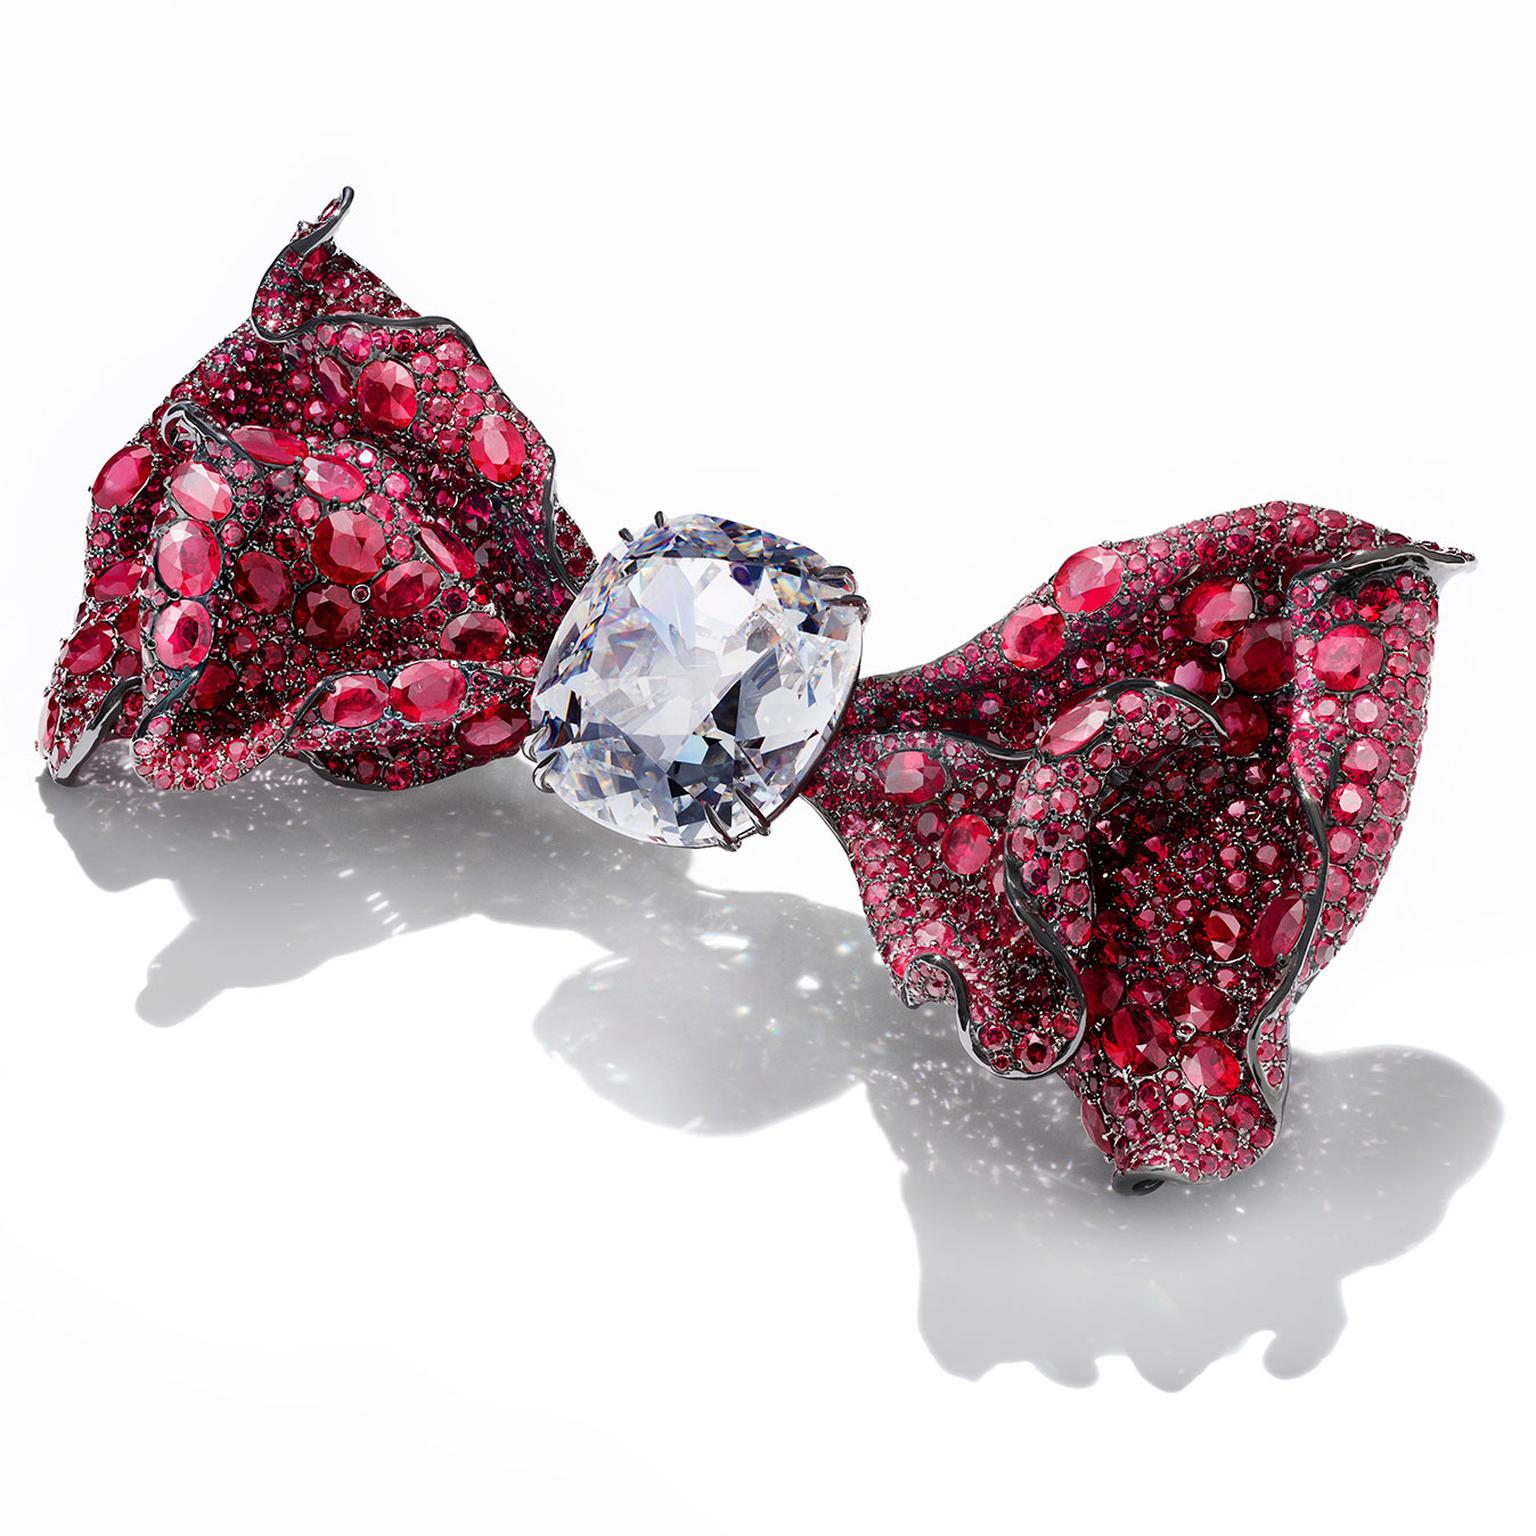 Cindy Chao The Art Jewel 2016 Black Label Masterpiece Bowtie brooch